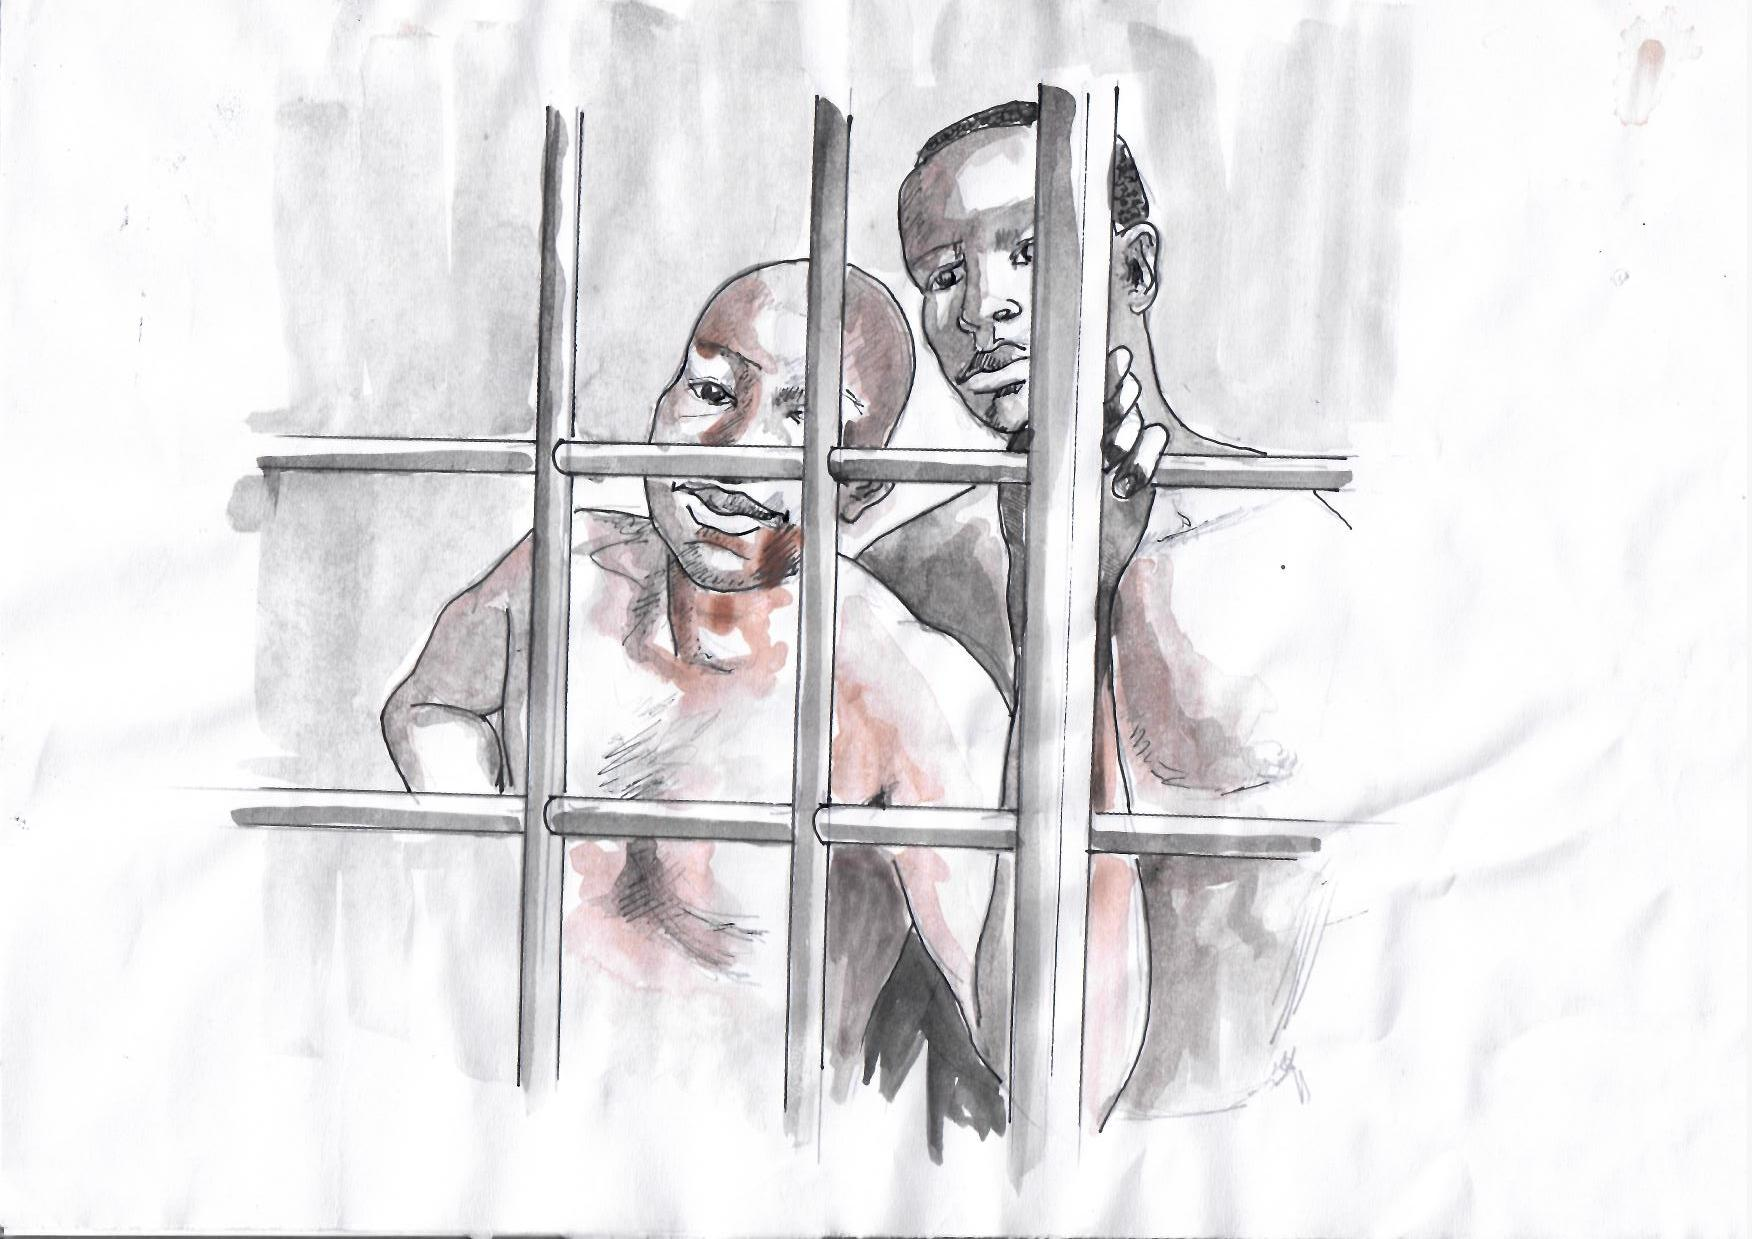 CLICK IMAGE TO DONATE TO FREE FORD AND BILL. Illustration by Vincent Kyabayinze, East Africa Visual Artists (EAVA Artists)